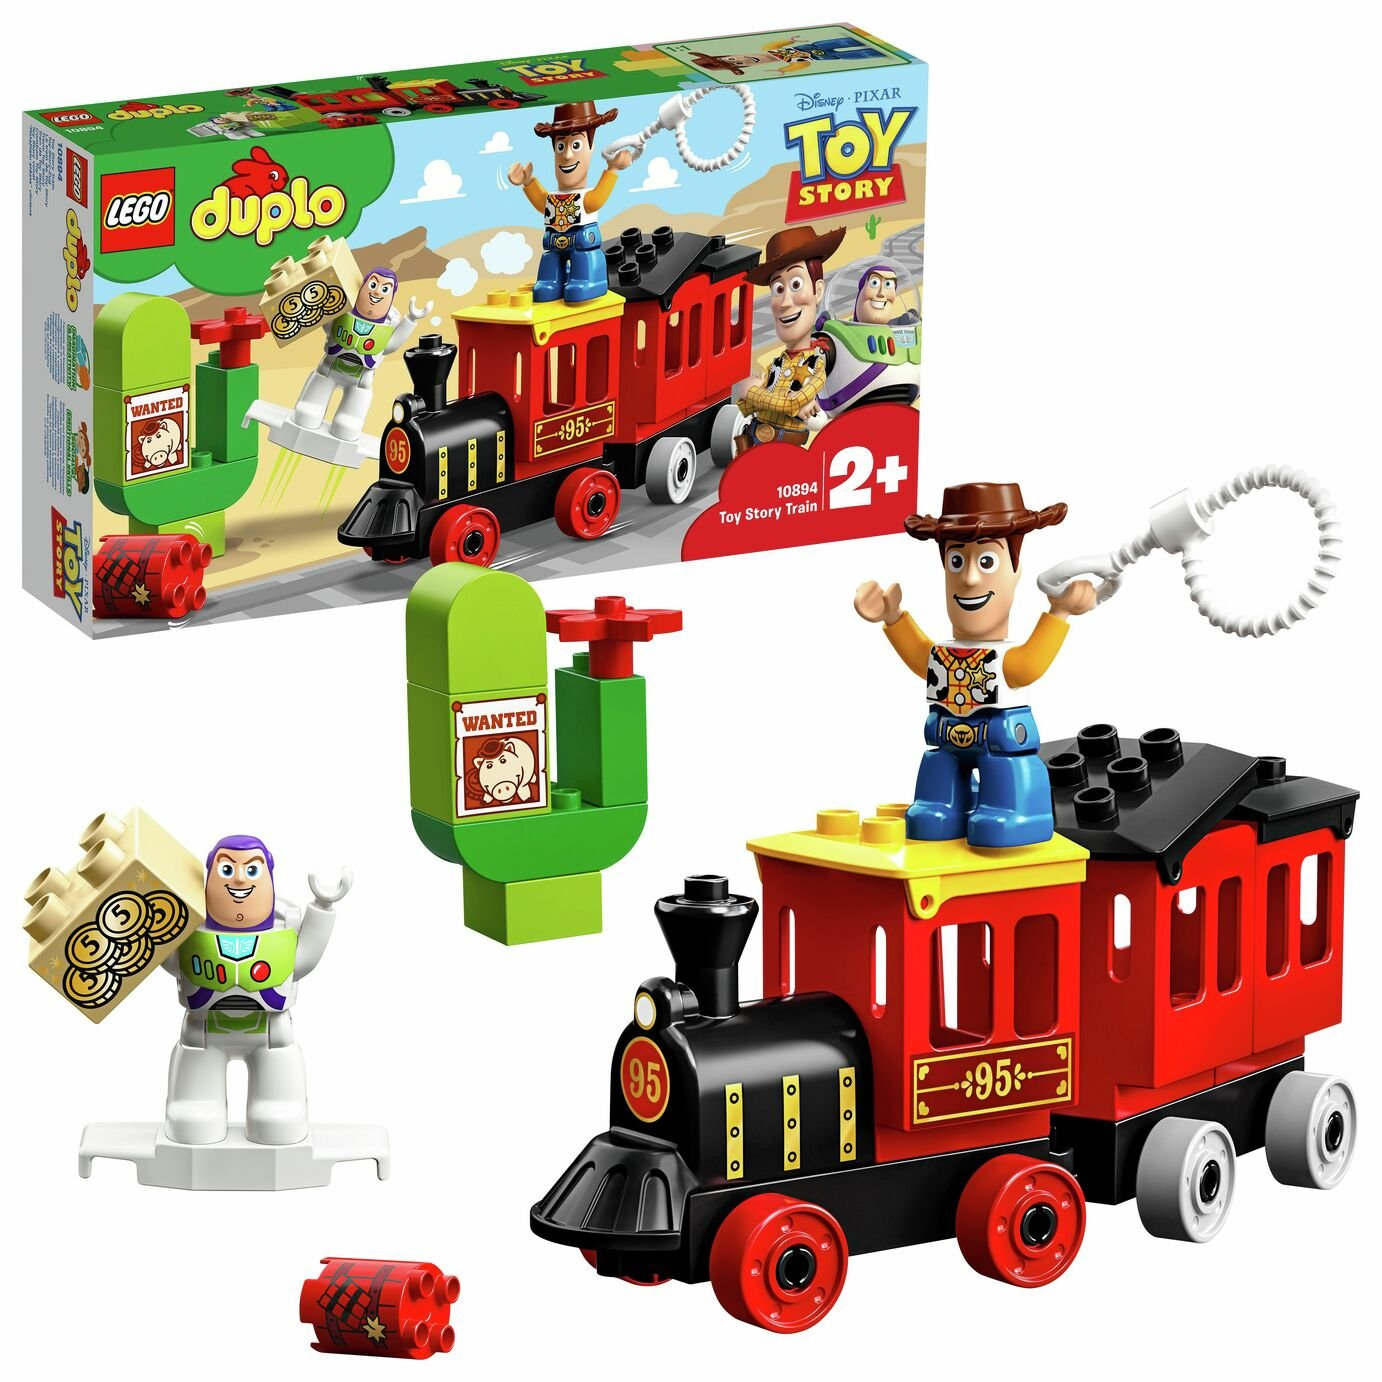 LEGO DUPLO Toy Story Train Building Set - 10894